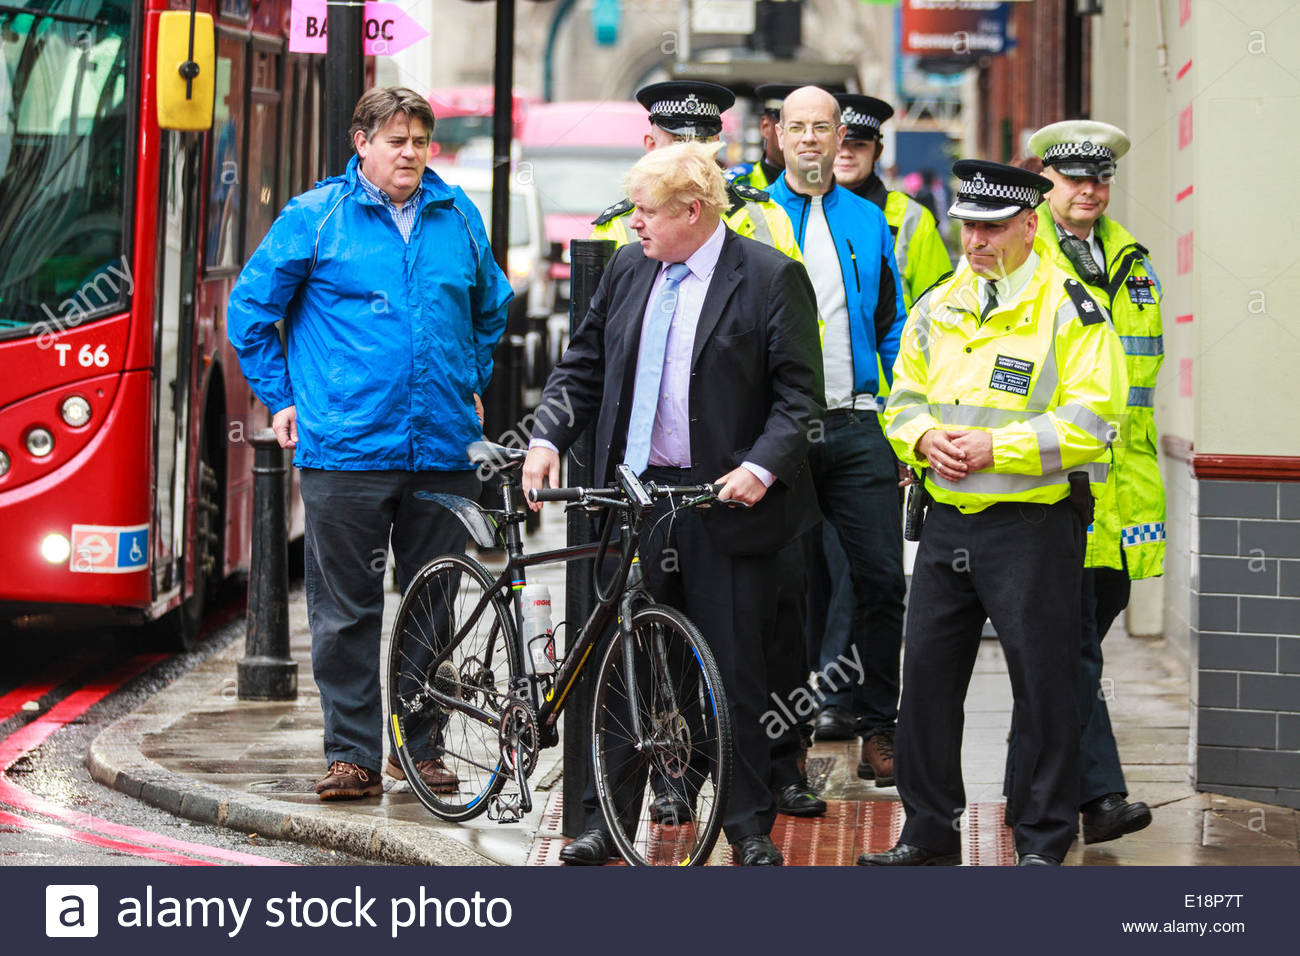 Tower Bridge Road, Bermondsey, London, UK 27th May 2014 Mayor of London Boris Johnson crossing the road with his own bicycle Boris Johnson Road Saftey campaign by the Mayor of London 'Credit: Richard Soans/Alamy Live News' - Stock Image